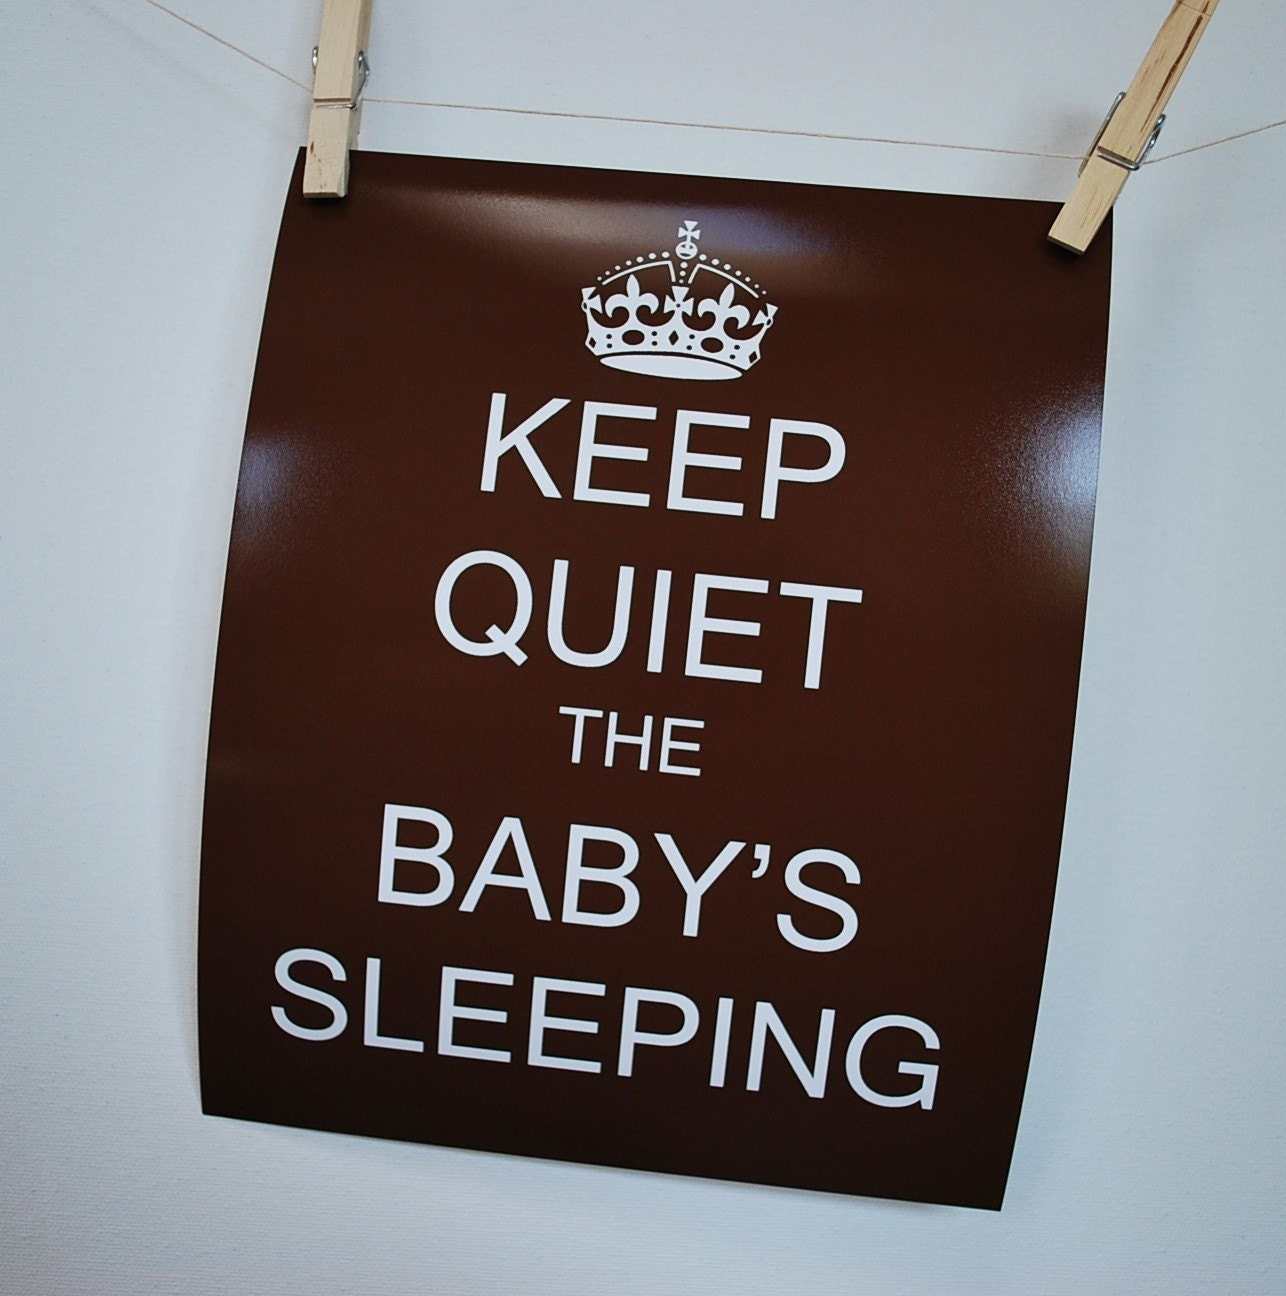 Keep Quiet The Baby S Sleeping Poster